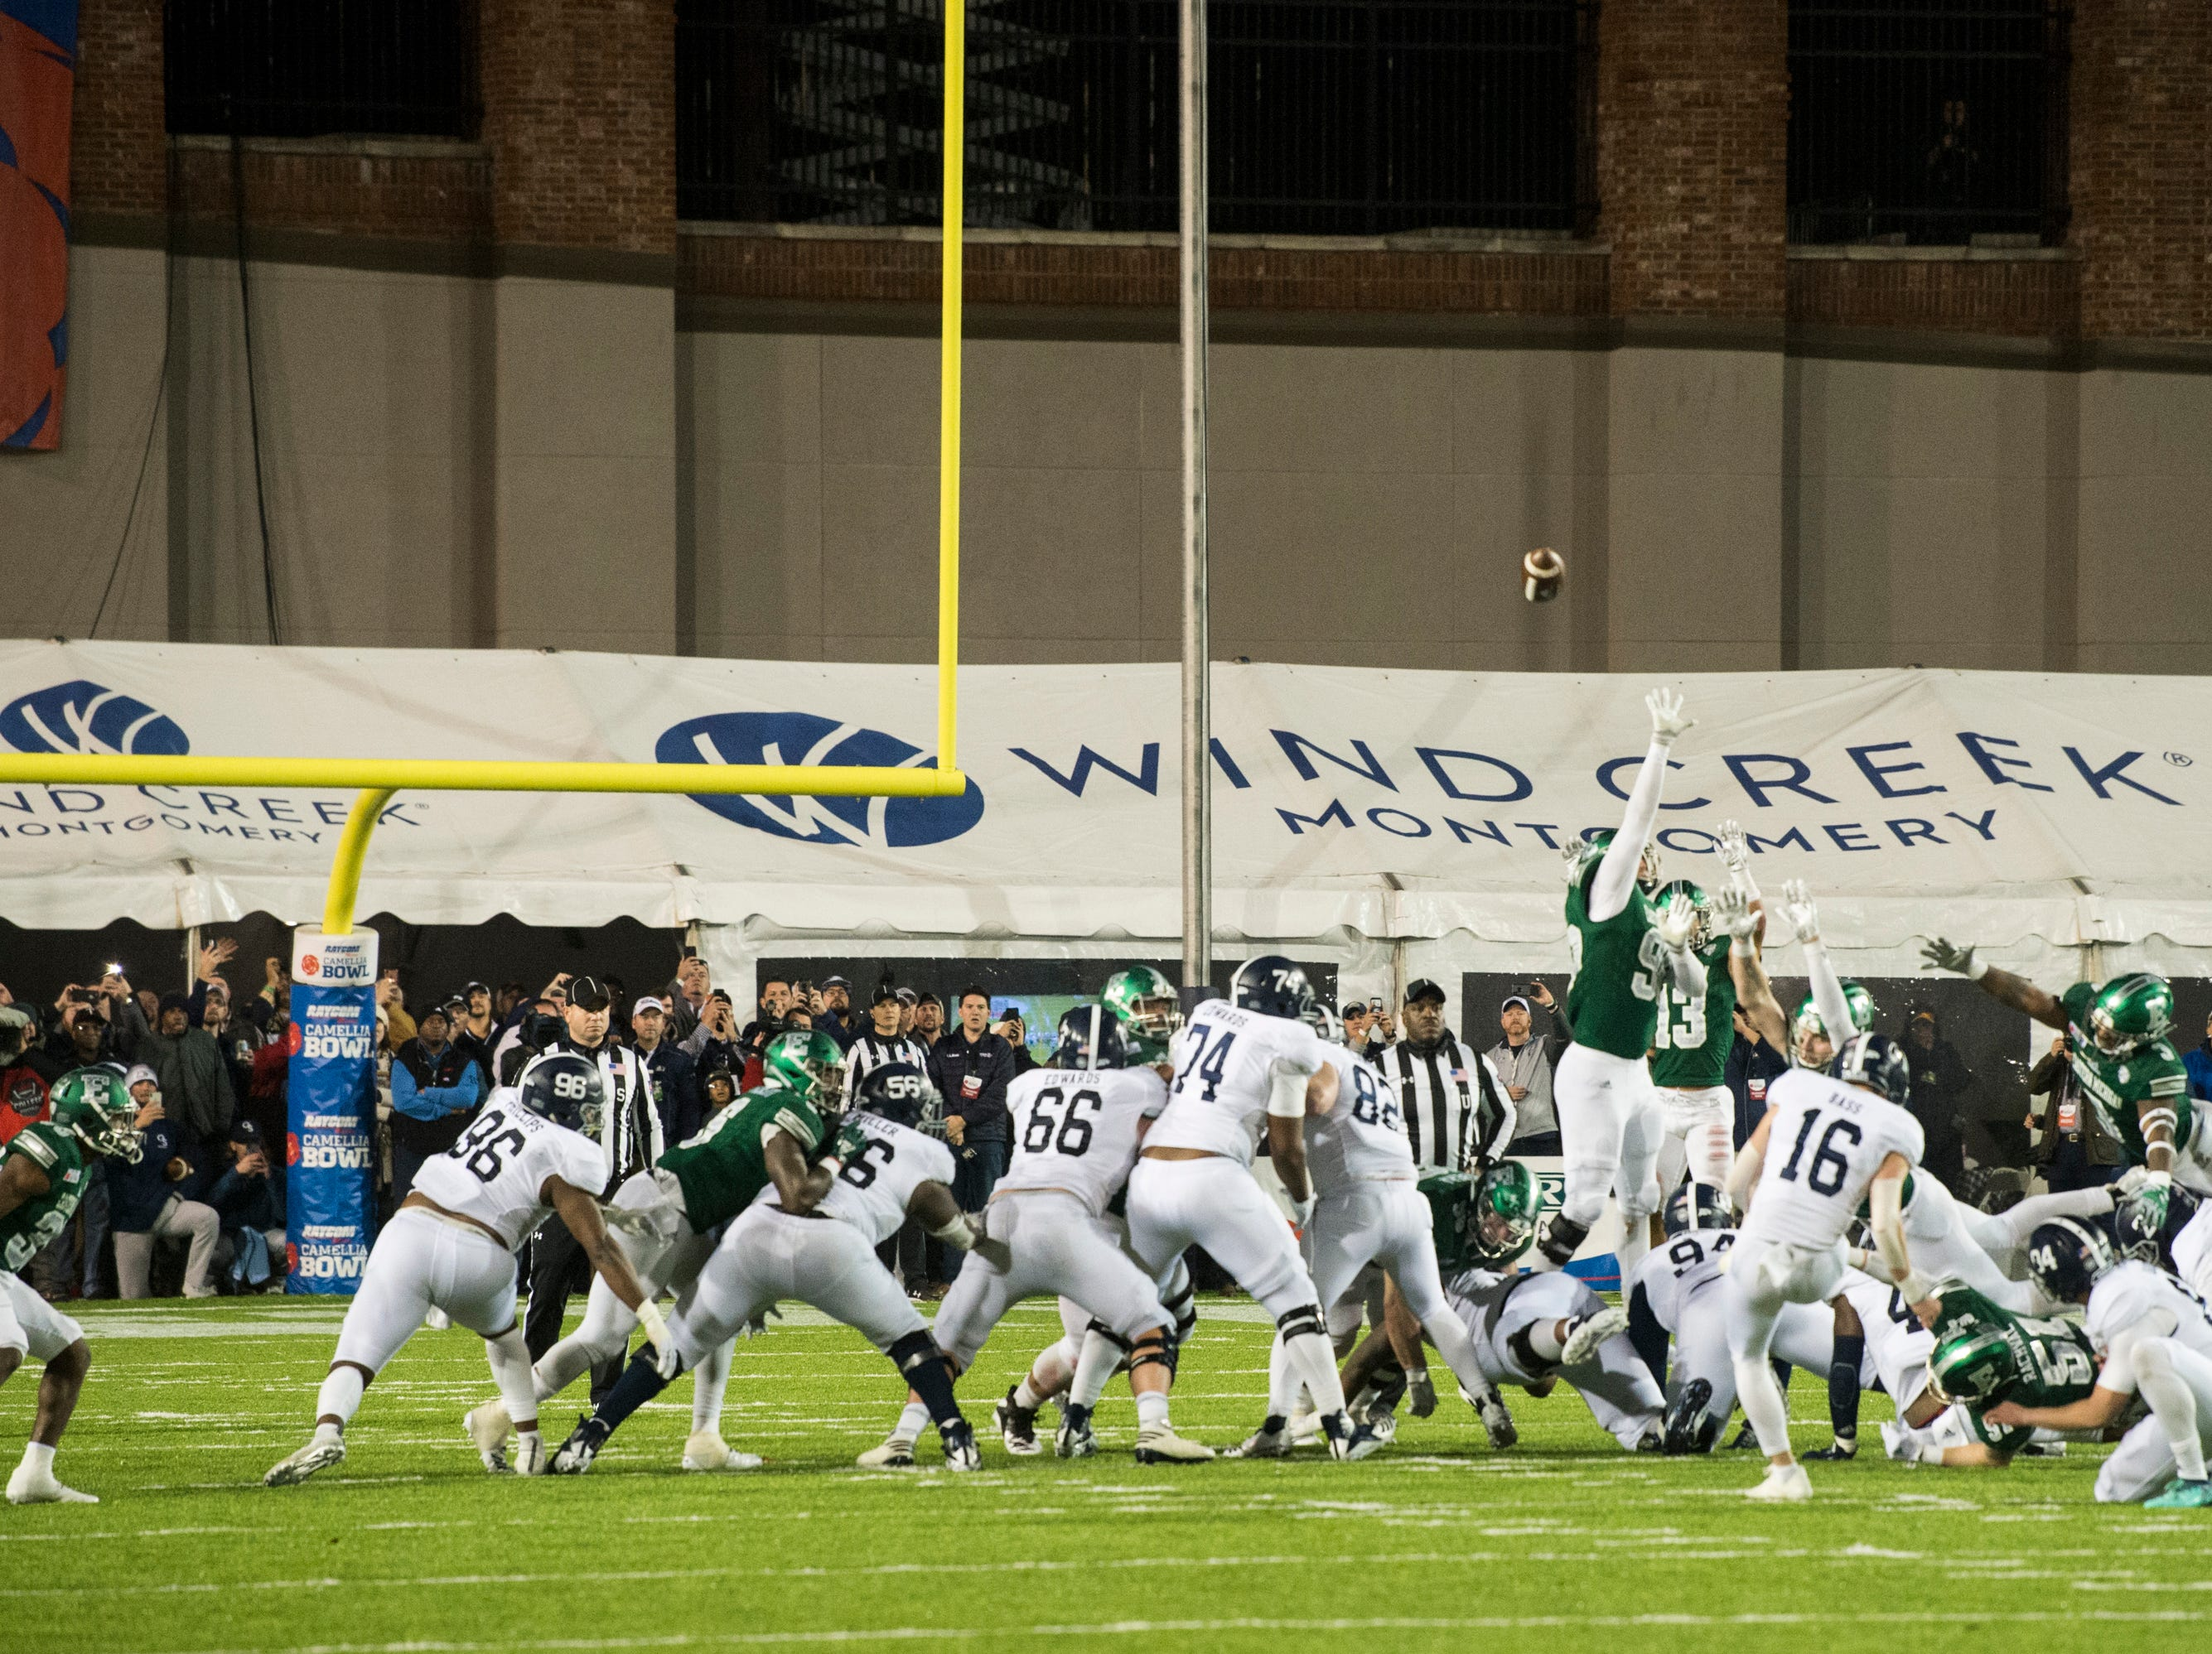 Georgia Southern placekicker Tyler Bass (16) kicks the game winning field goal during the Camellia Bowl at Cramton Bowl in Montgomery, Ala., on Saturday, Dec. 15, 2018. Georgia Southern defeated Eastern Michigan 23-21.